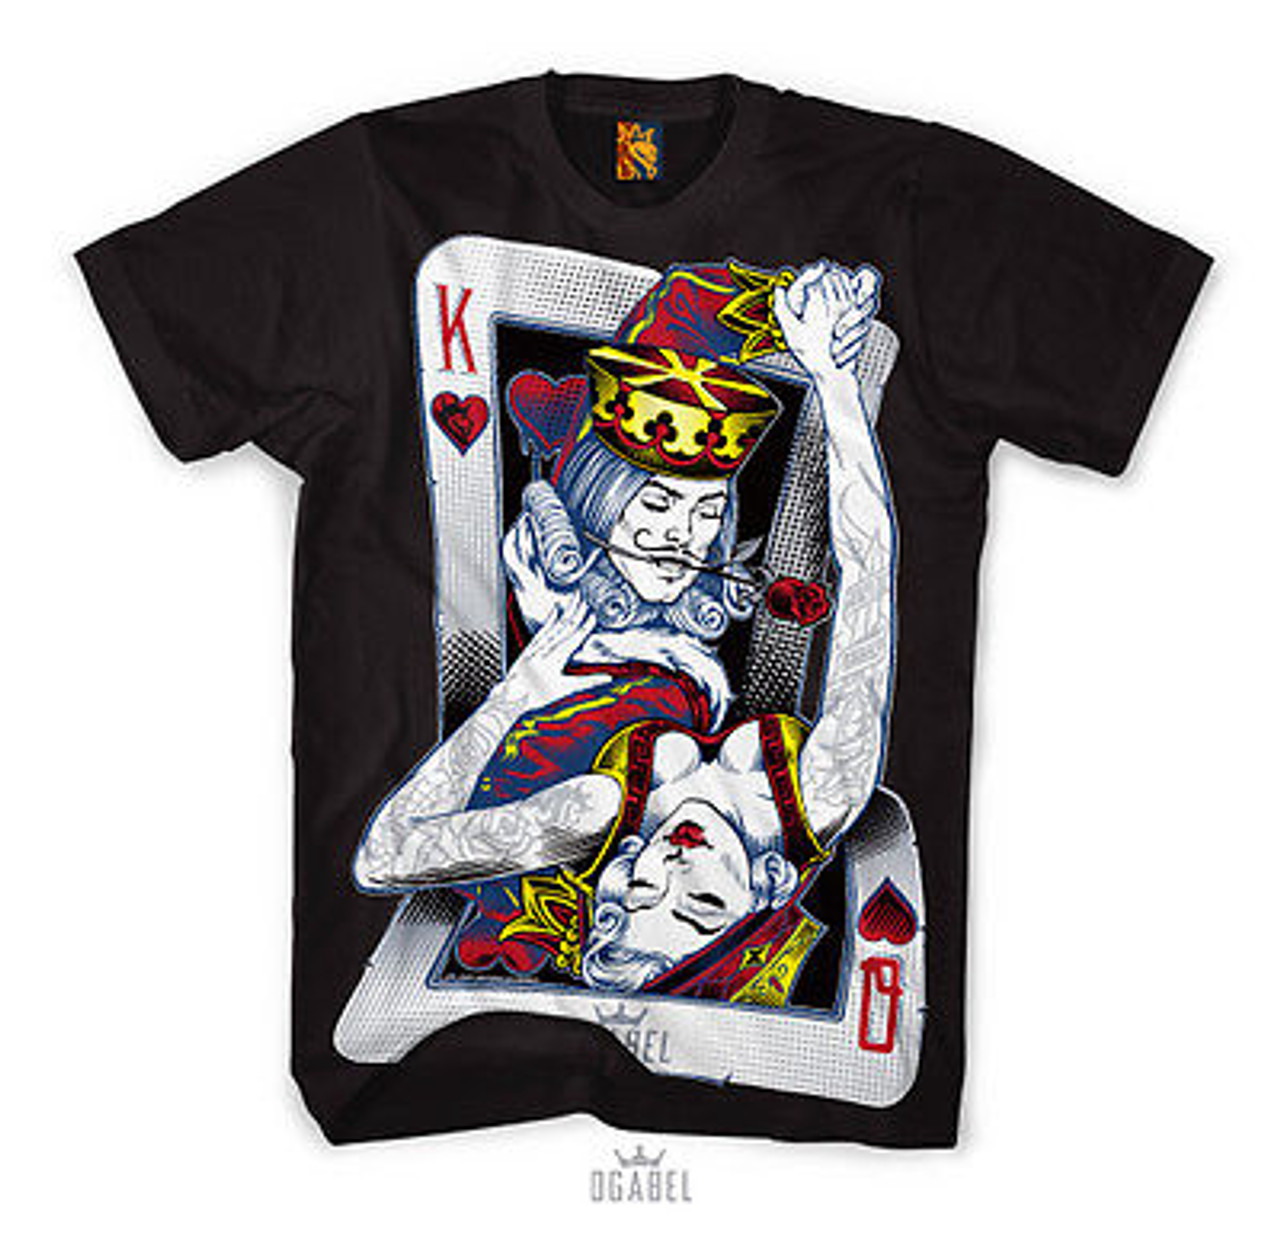 e7adbd366d31f OG ABEL CLOTHING DANCING CARDS URBAN KING QUEEN INK TATTOO BLACK TEE SHIRT  S-4XL